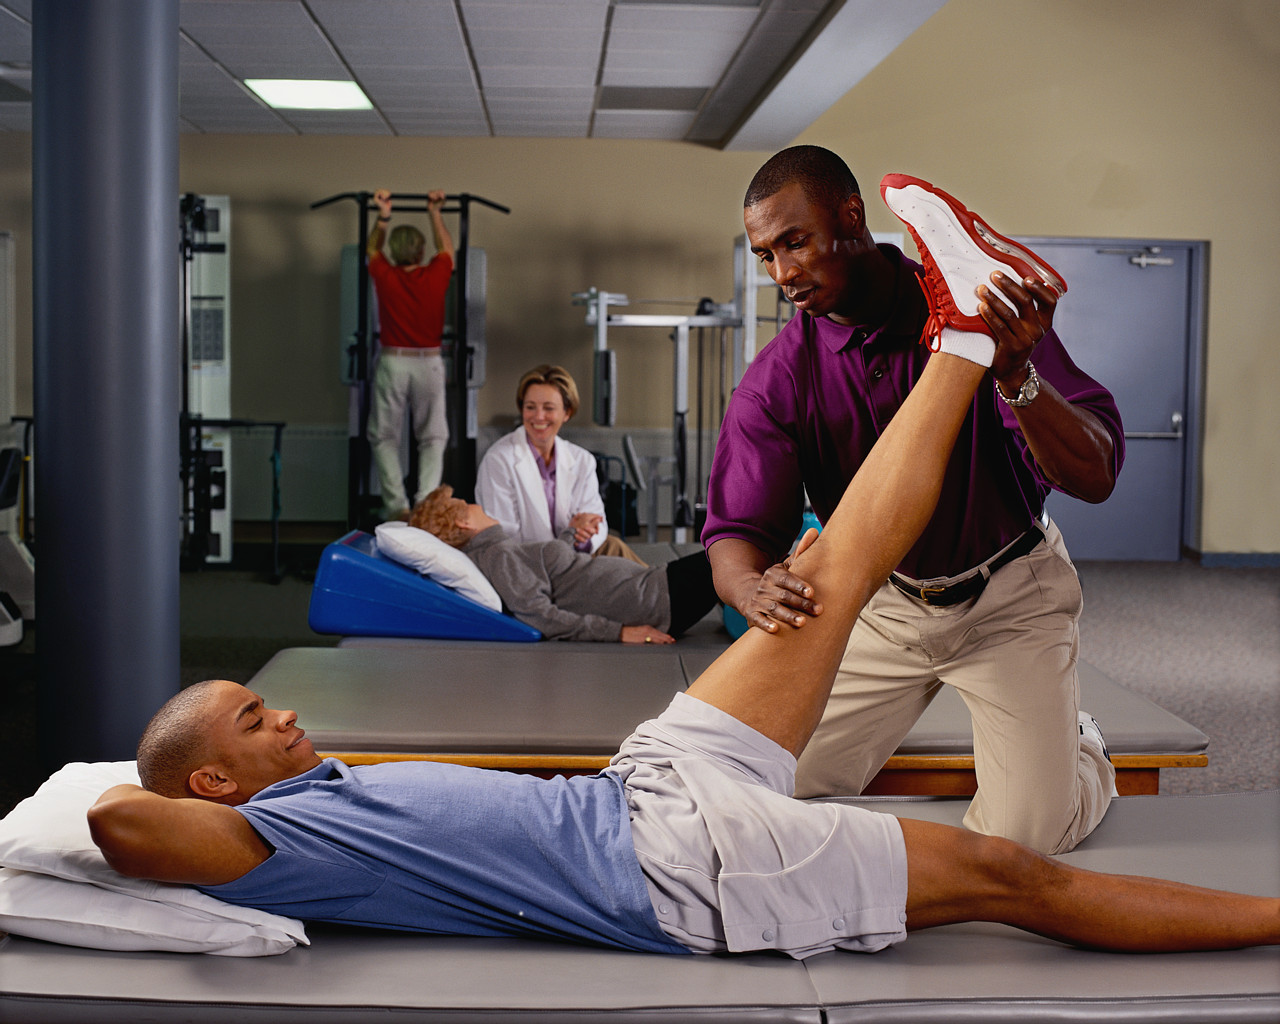 sports medicine physician Sports medicine focuses on helping people improve their athletic performance, recover from injury and prevent future injuries it is a fast-growing health care field, because health workers who specialize in sports medicine help all kinds of people, not just athletes.